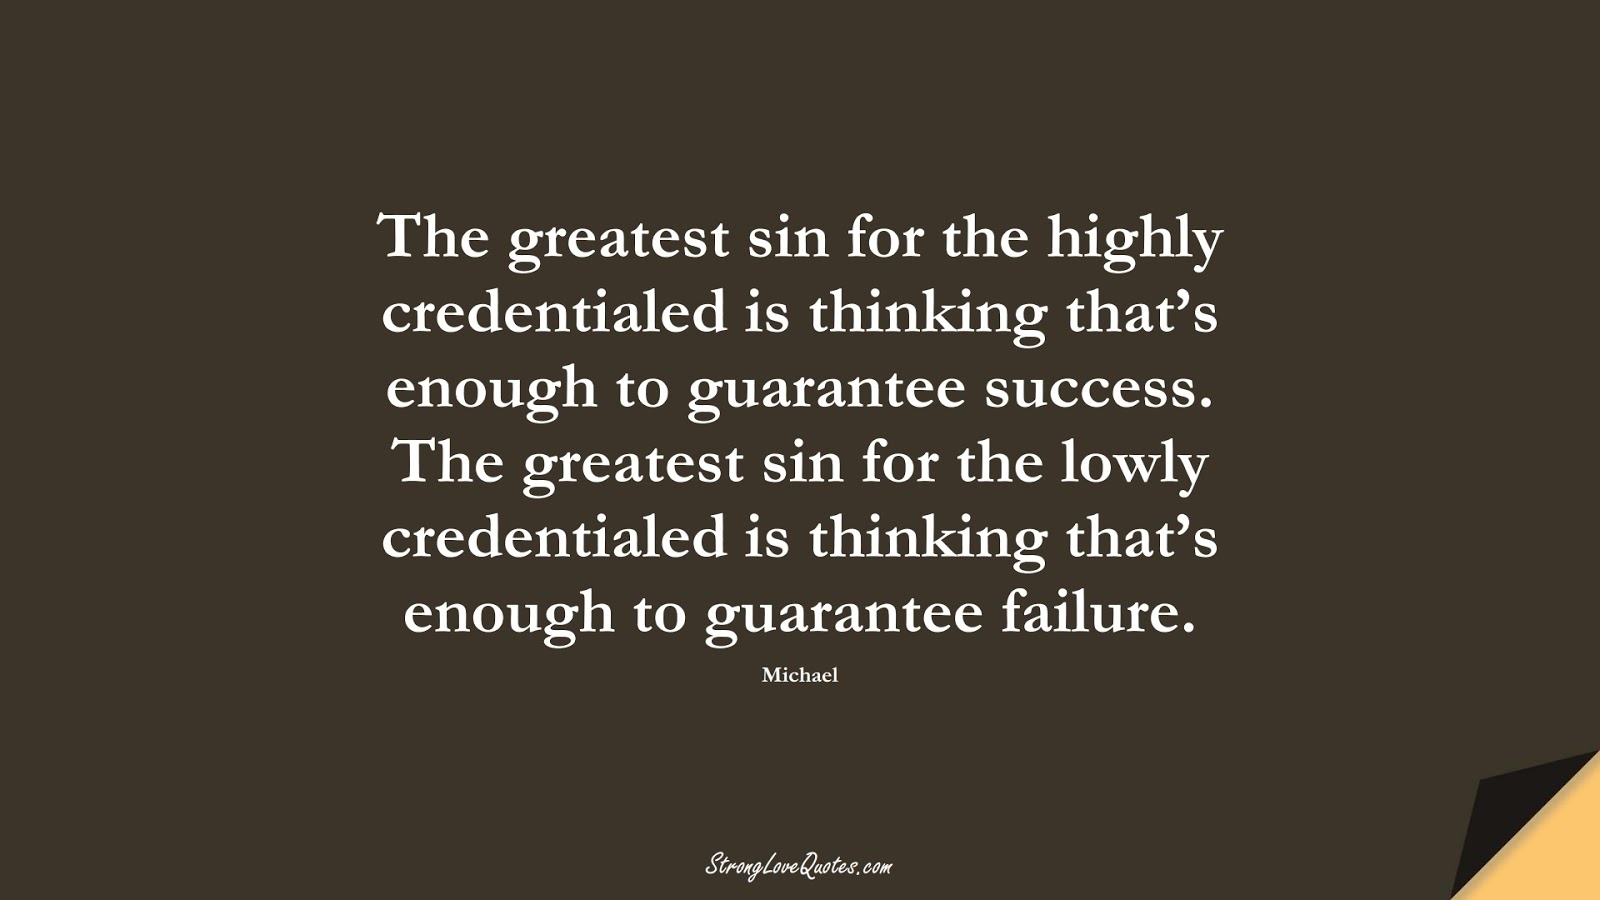 The greatest sin for the highly credentialed is thinking that's enough to guarantee success. The greatest sin for the lowly credentialed is thinking that's enough to guarantee failure. (Michael);  #KnowledgeQuotes